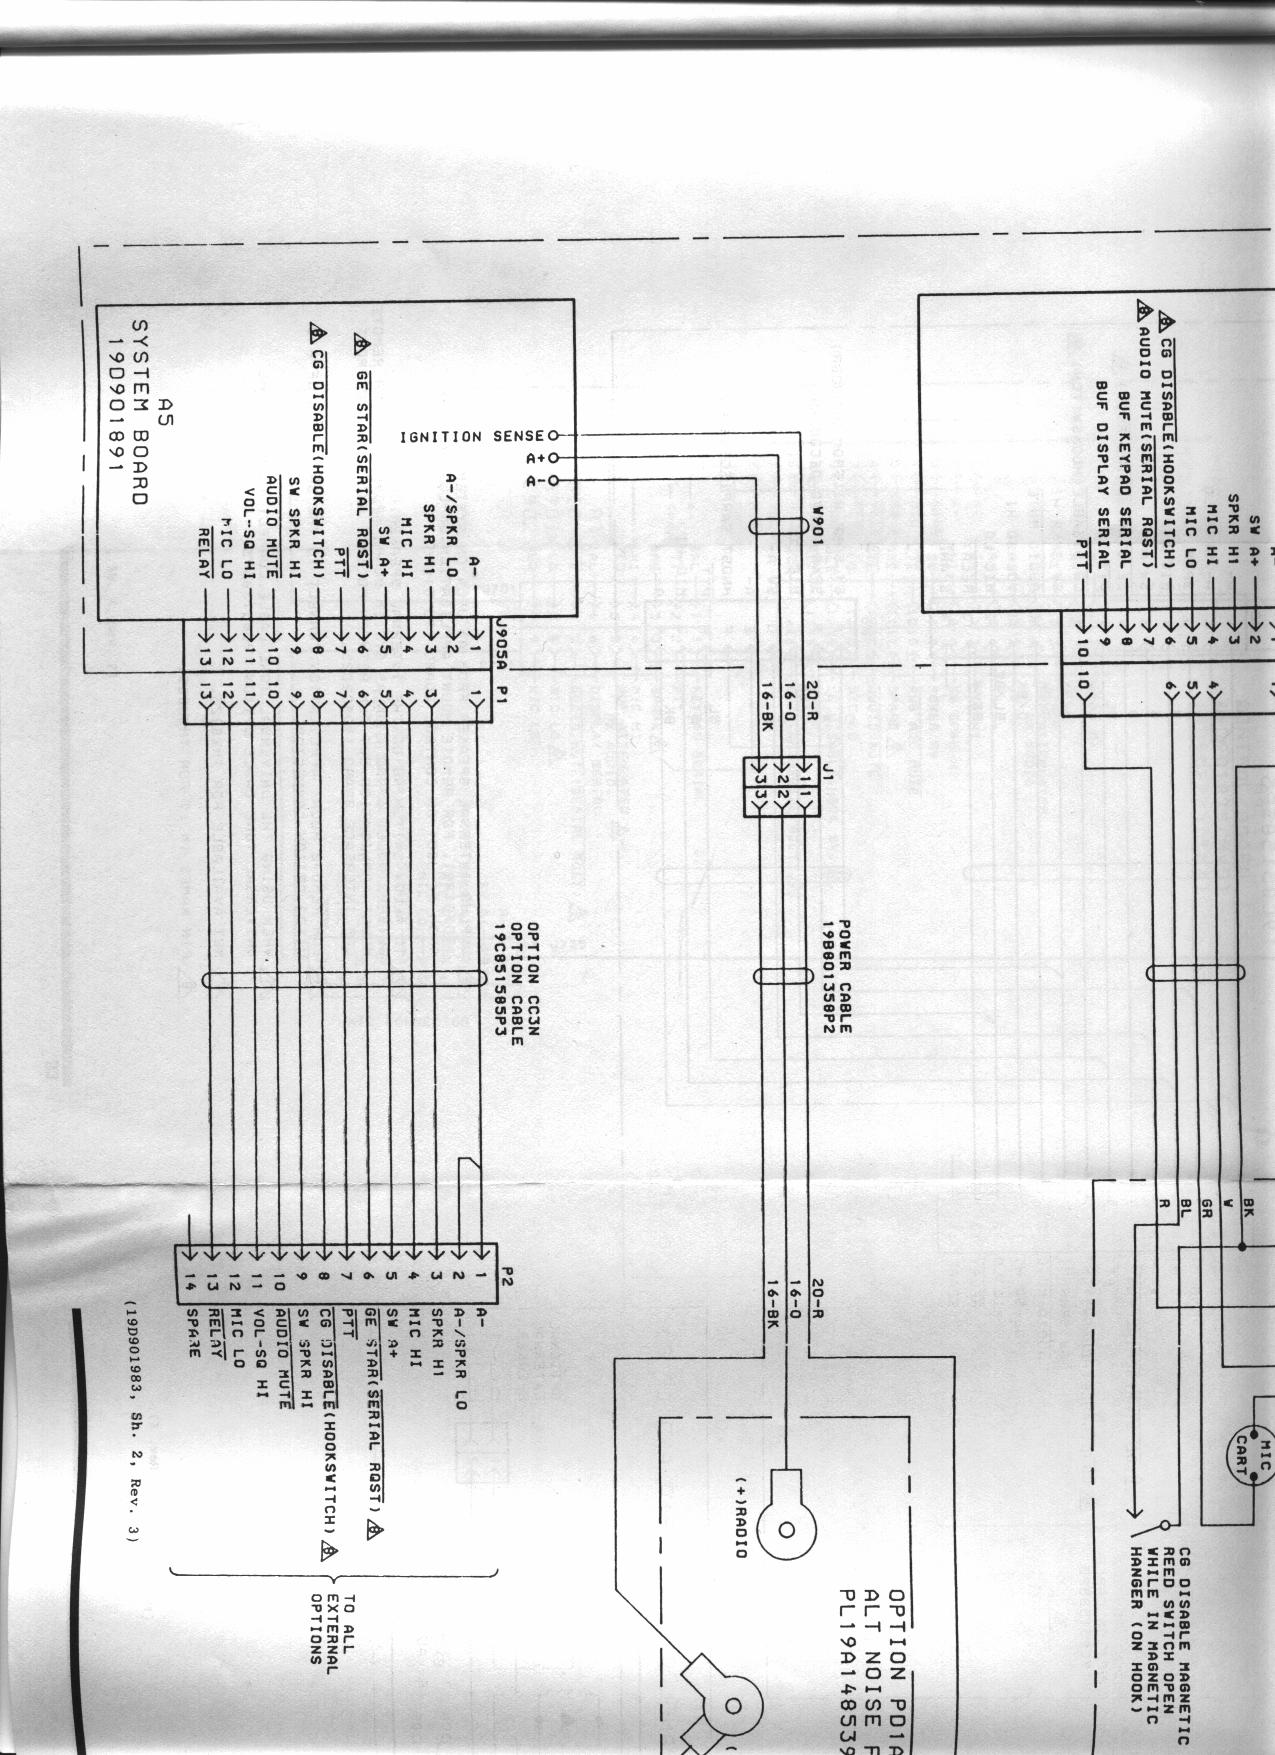 Cg 2002 Ford E250 Van Fuse Panel Diagram Wiring Library E 250